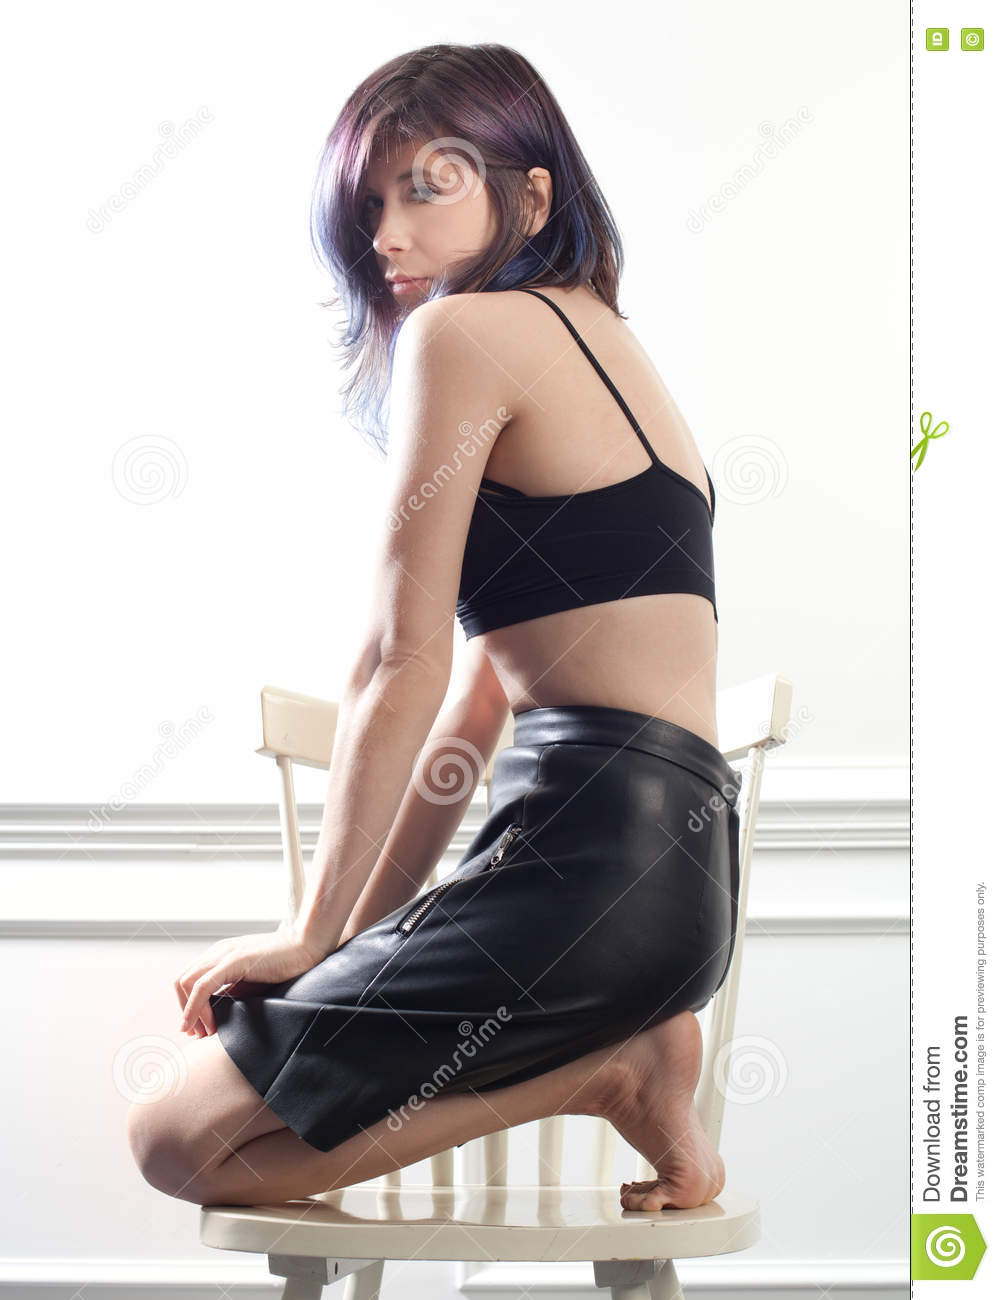 45b458309 An image of a pretty young woman in a black leather skirt kneeling barefoot  on a chair